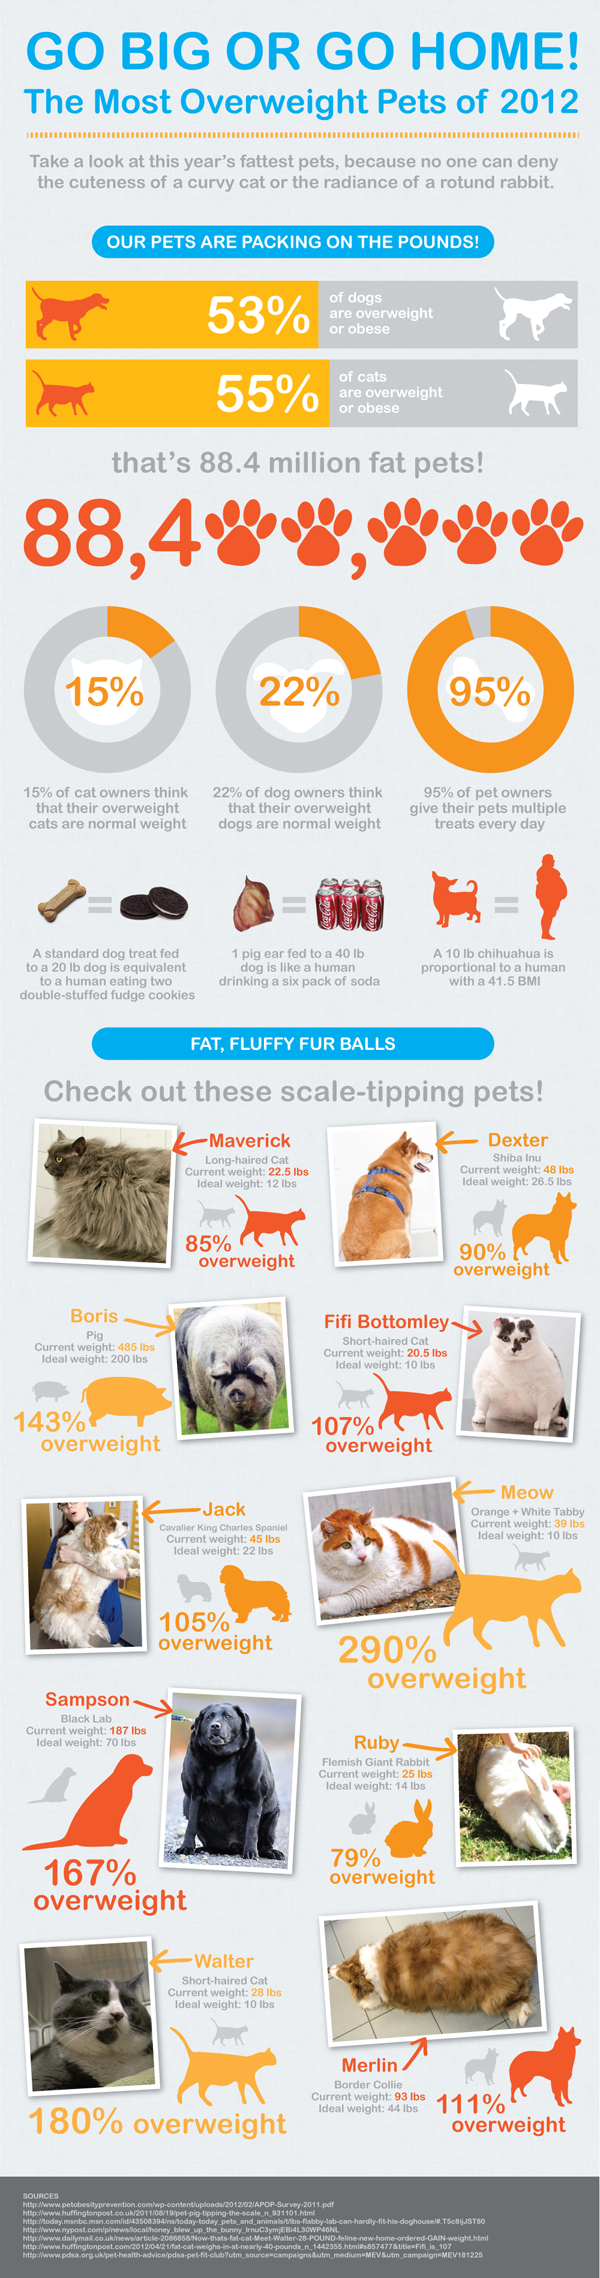 Fattest Pets of 2012